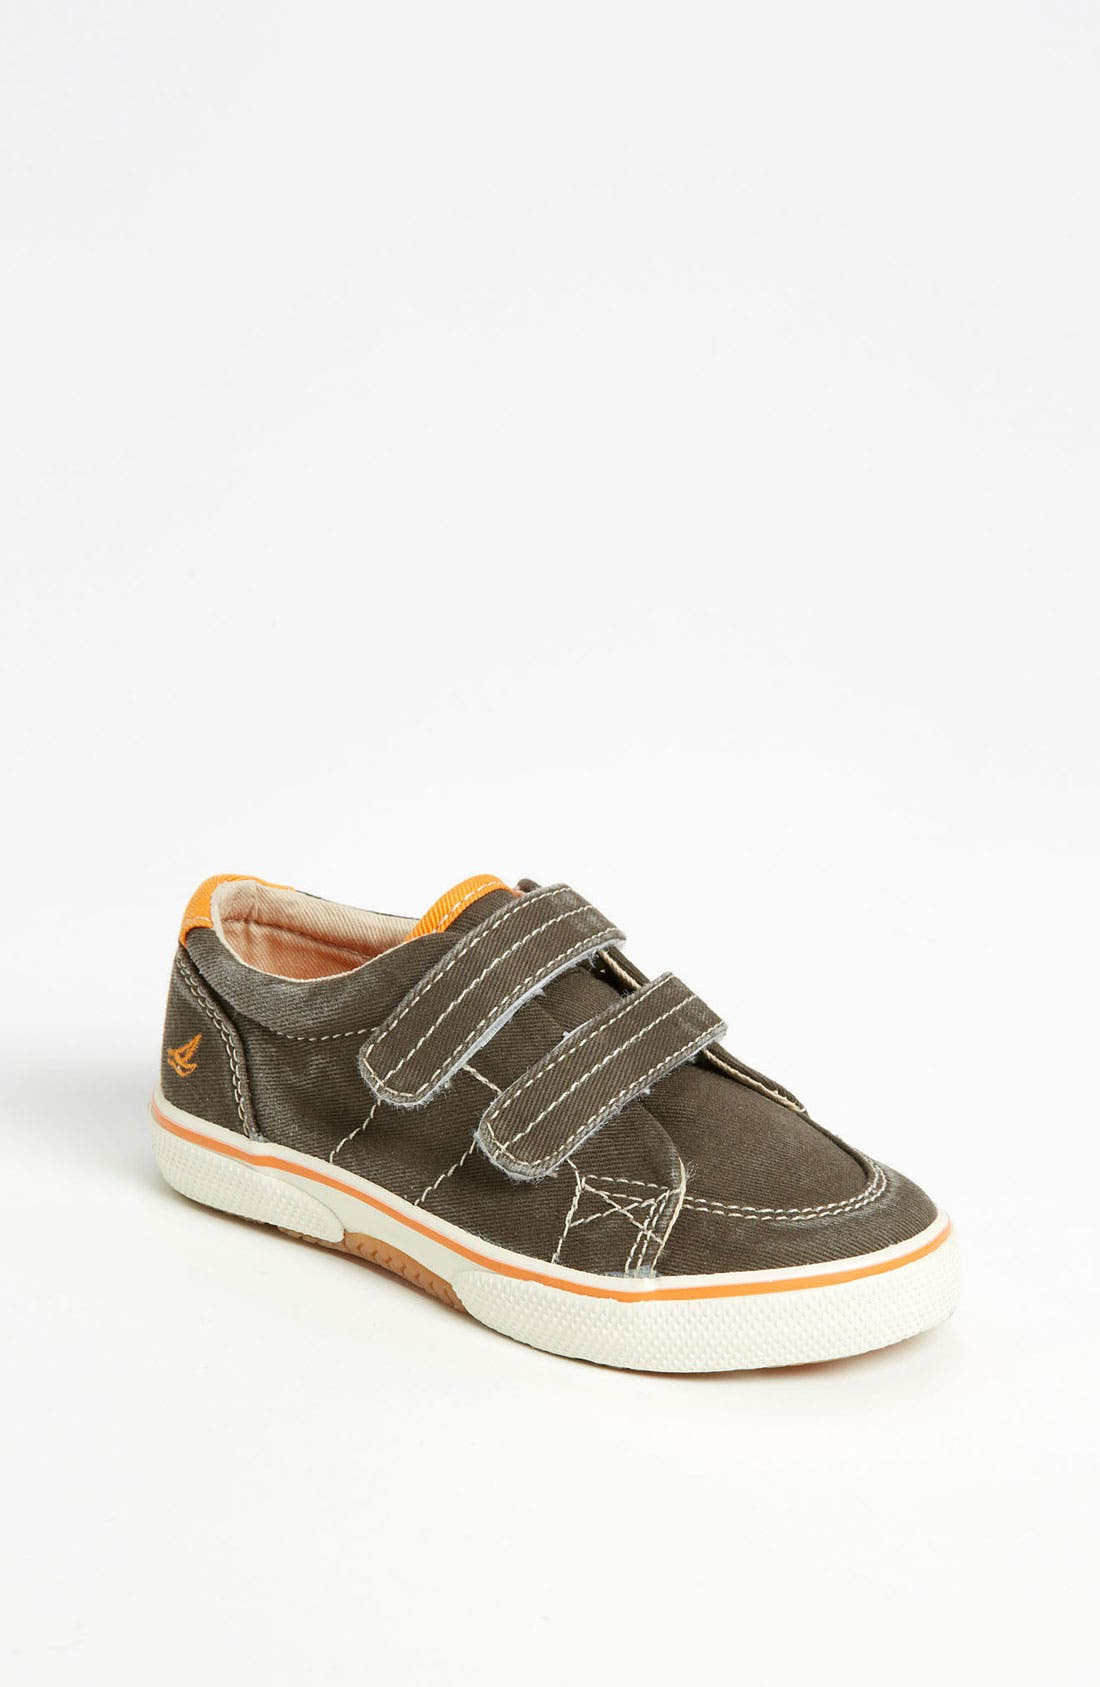 Sperry Top-Sider<sup>®</sup> Kids 'Halyard' Sneaker,                             Main thumbnail 3, color,